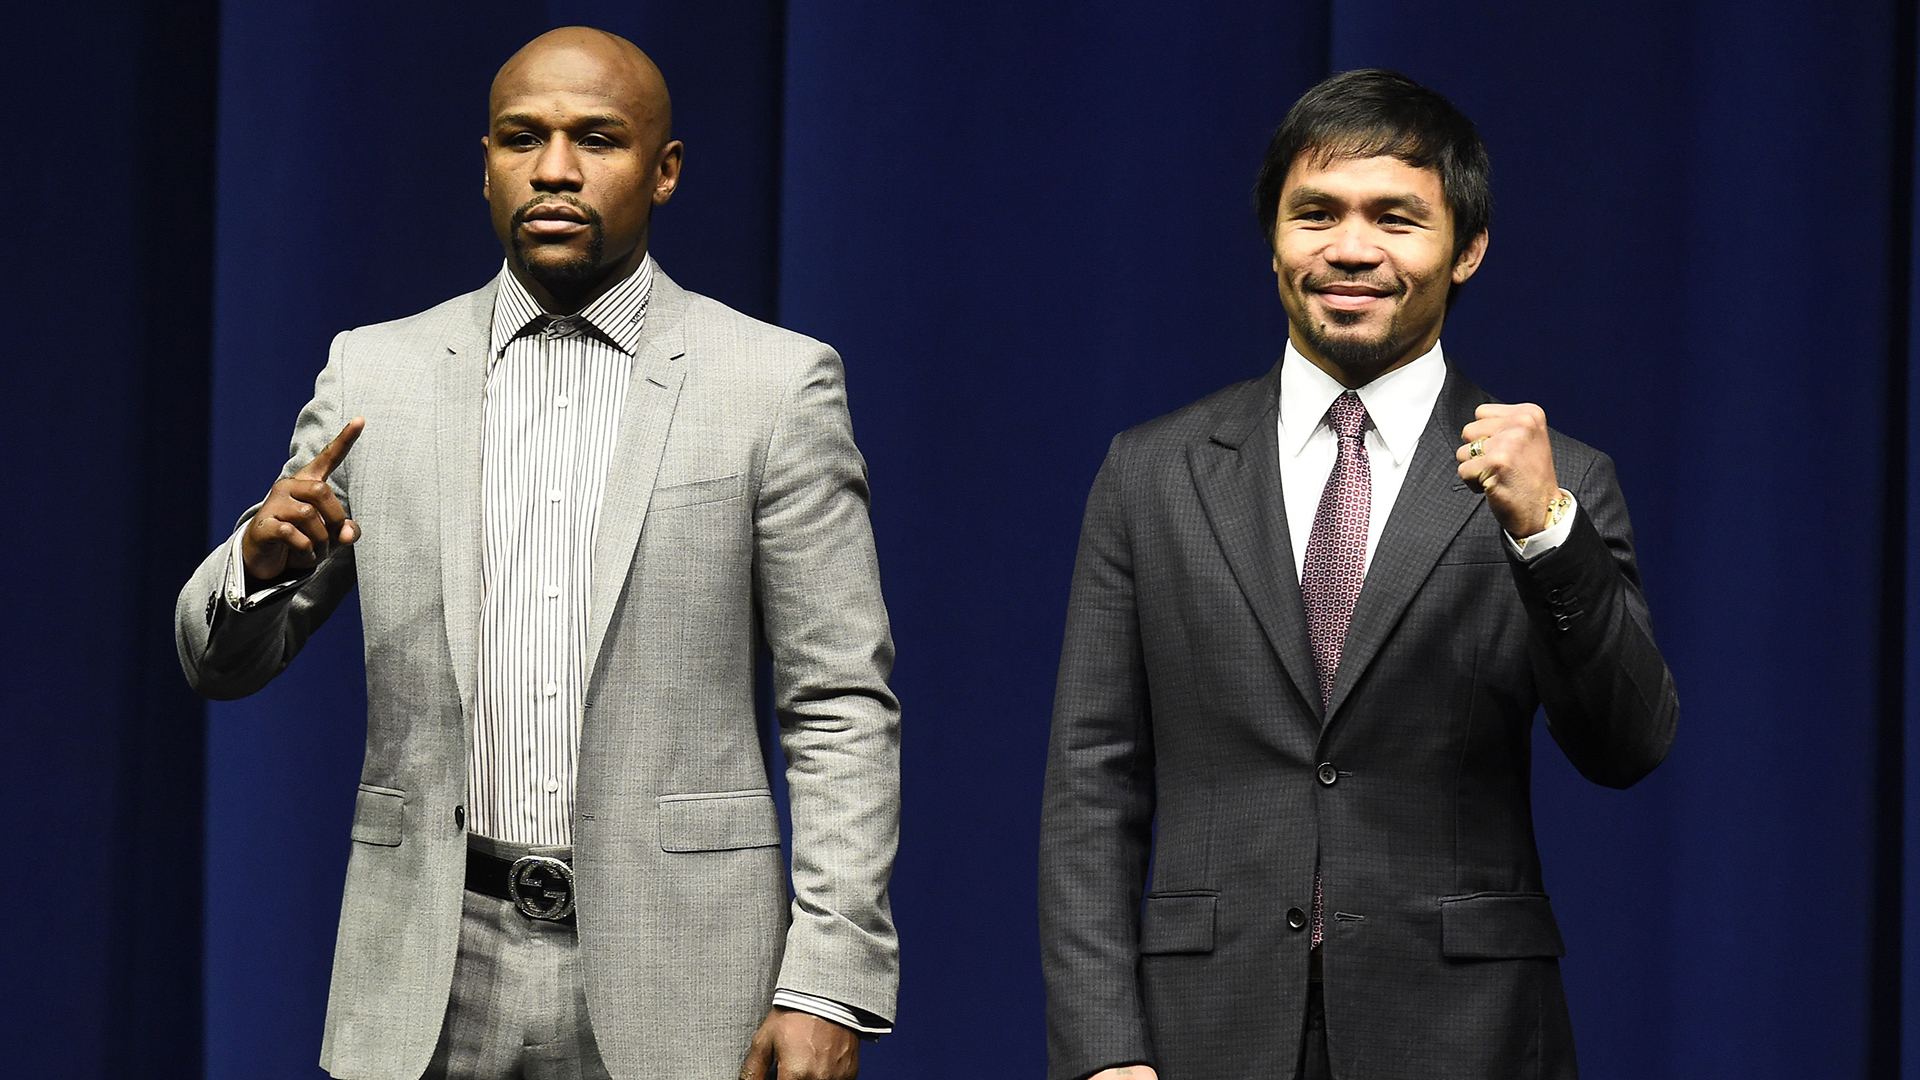 Fight Night: Why Mayweather-Pacquiao Became So Big